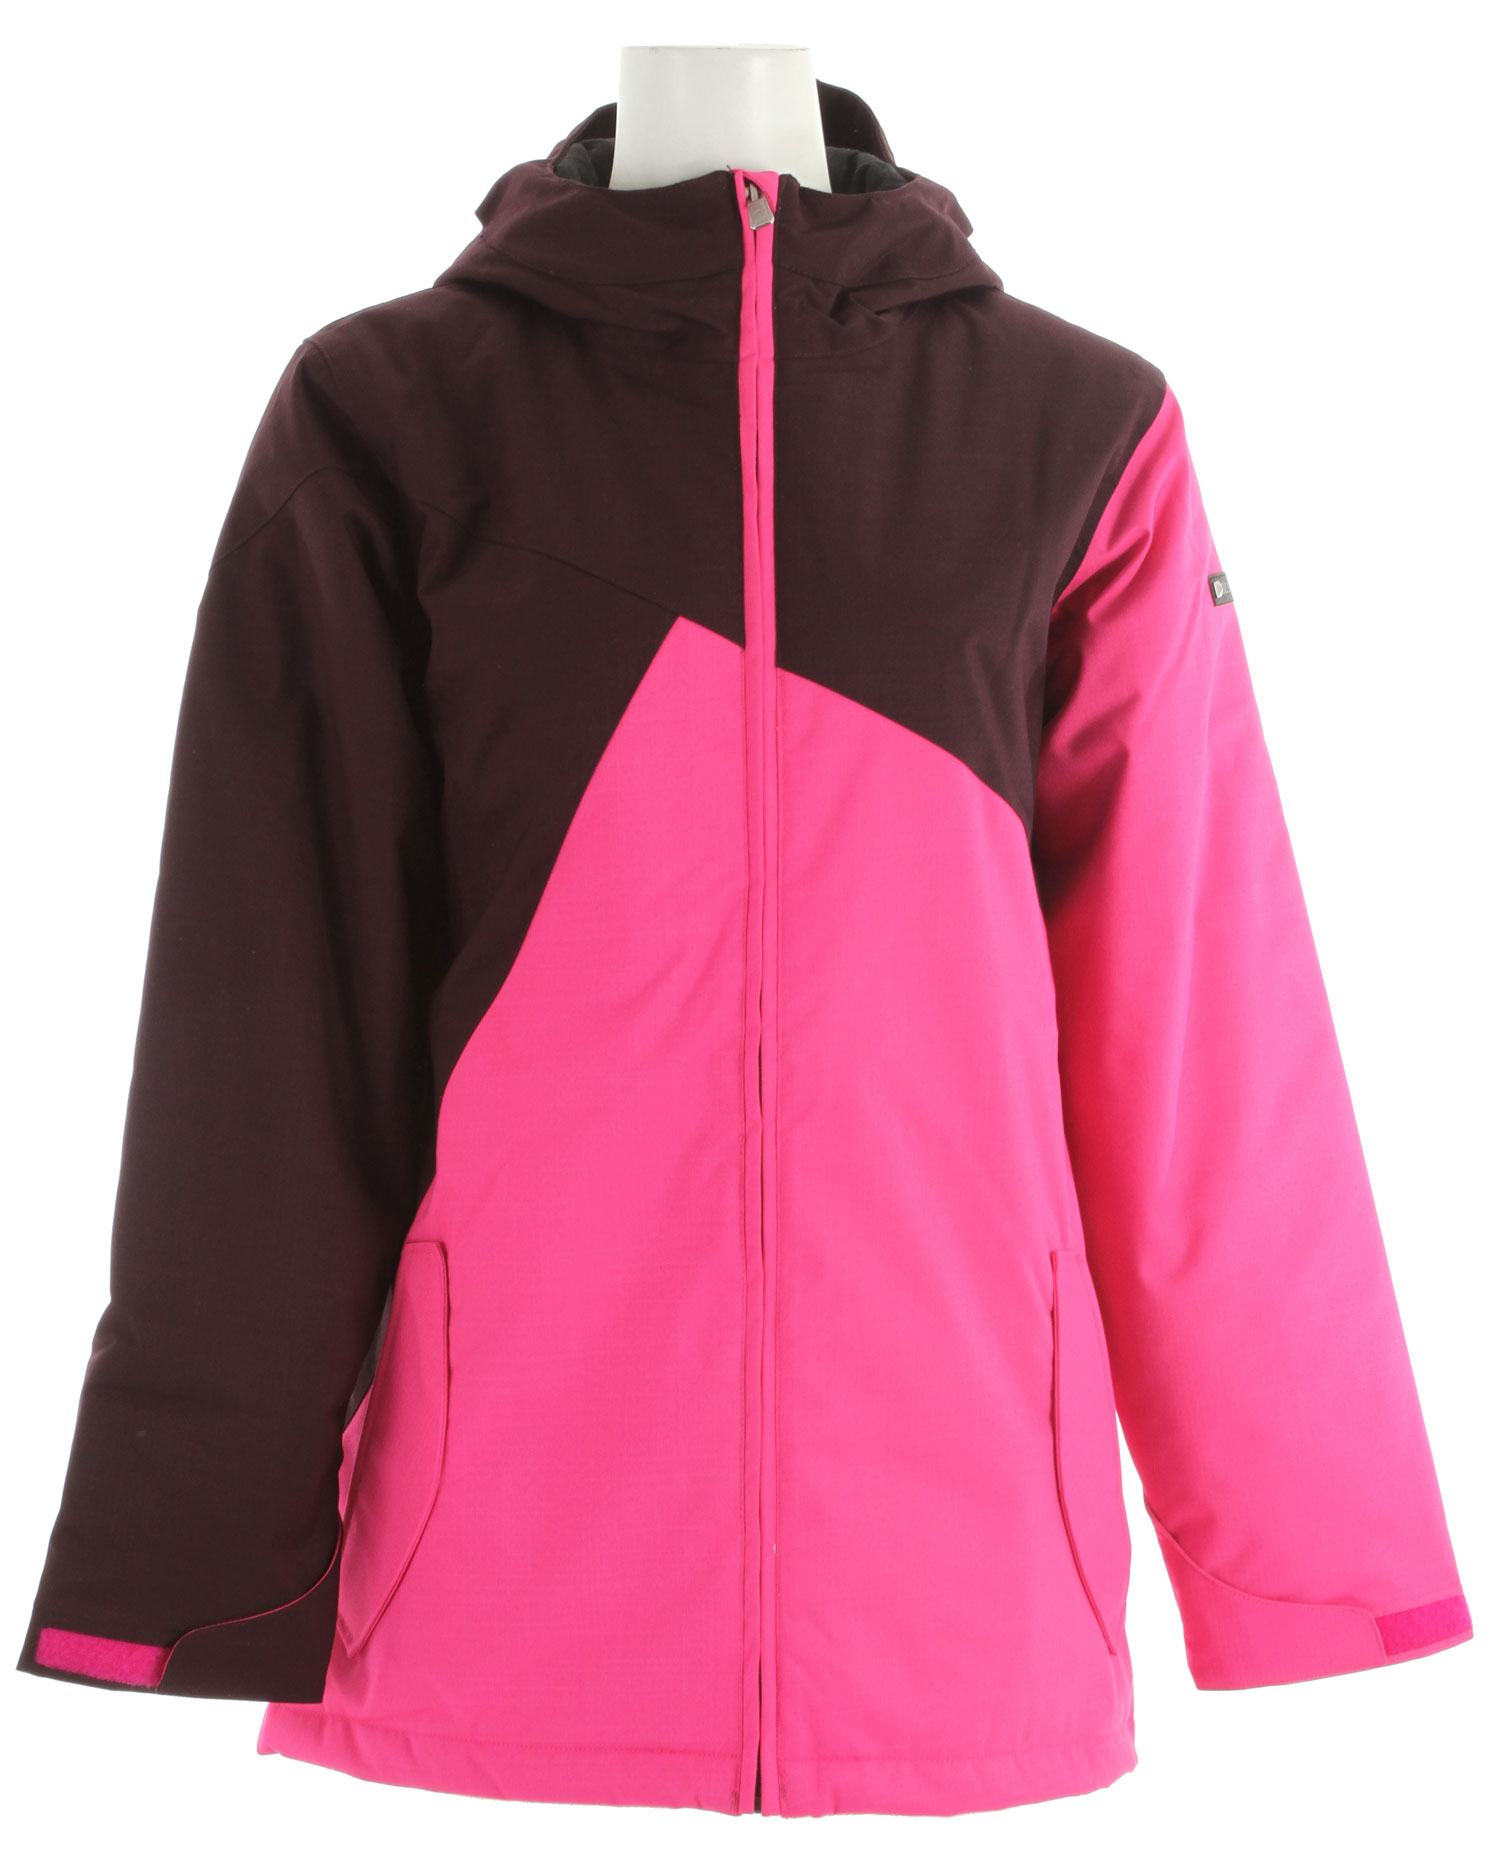 Snowboard Ride Brighton Snowboard Jacket - $57.64